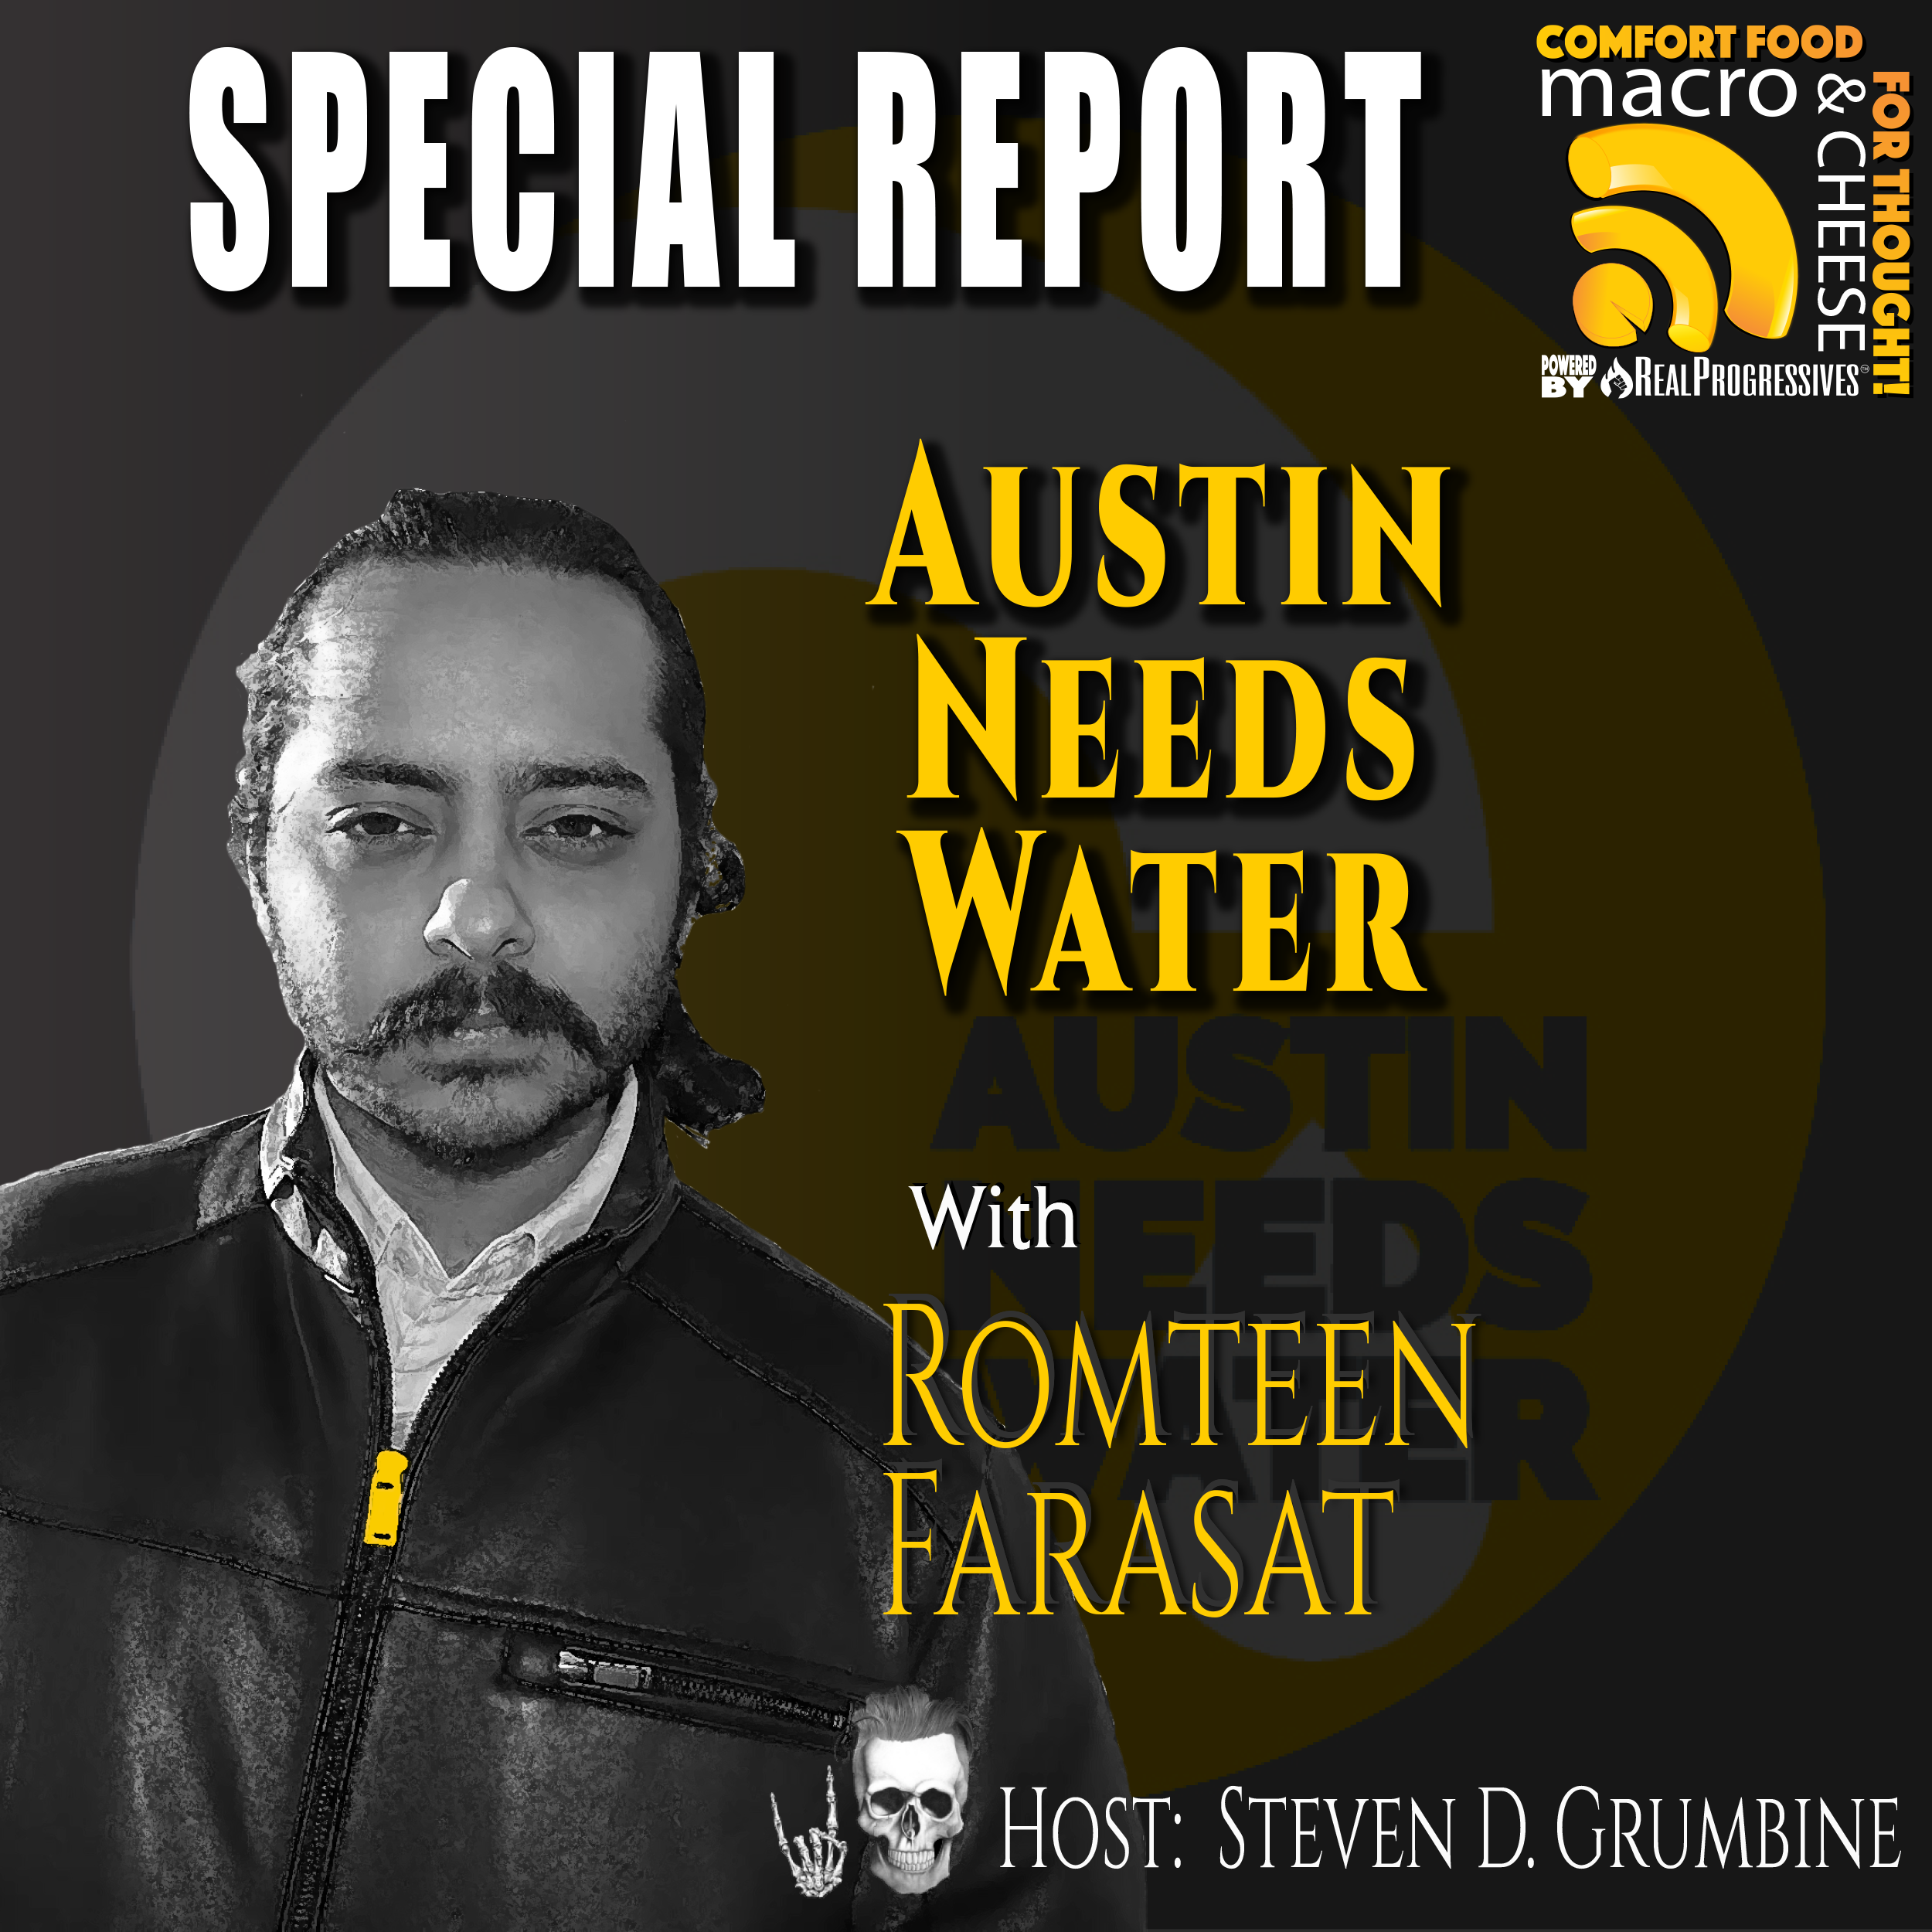 Austin Needs Water with Romteen Farasat